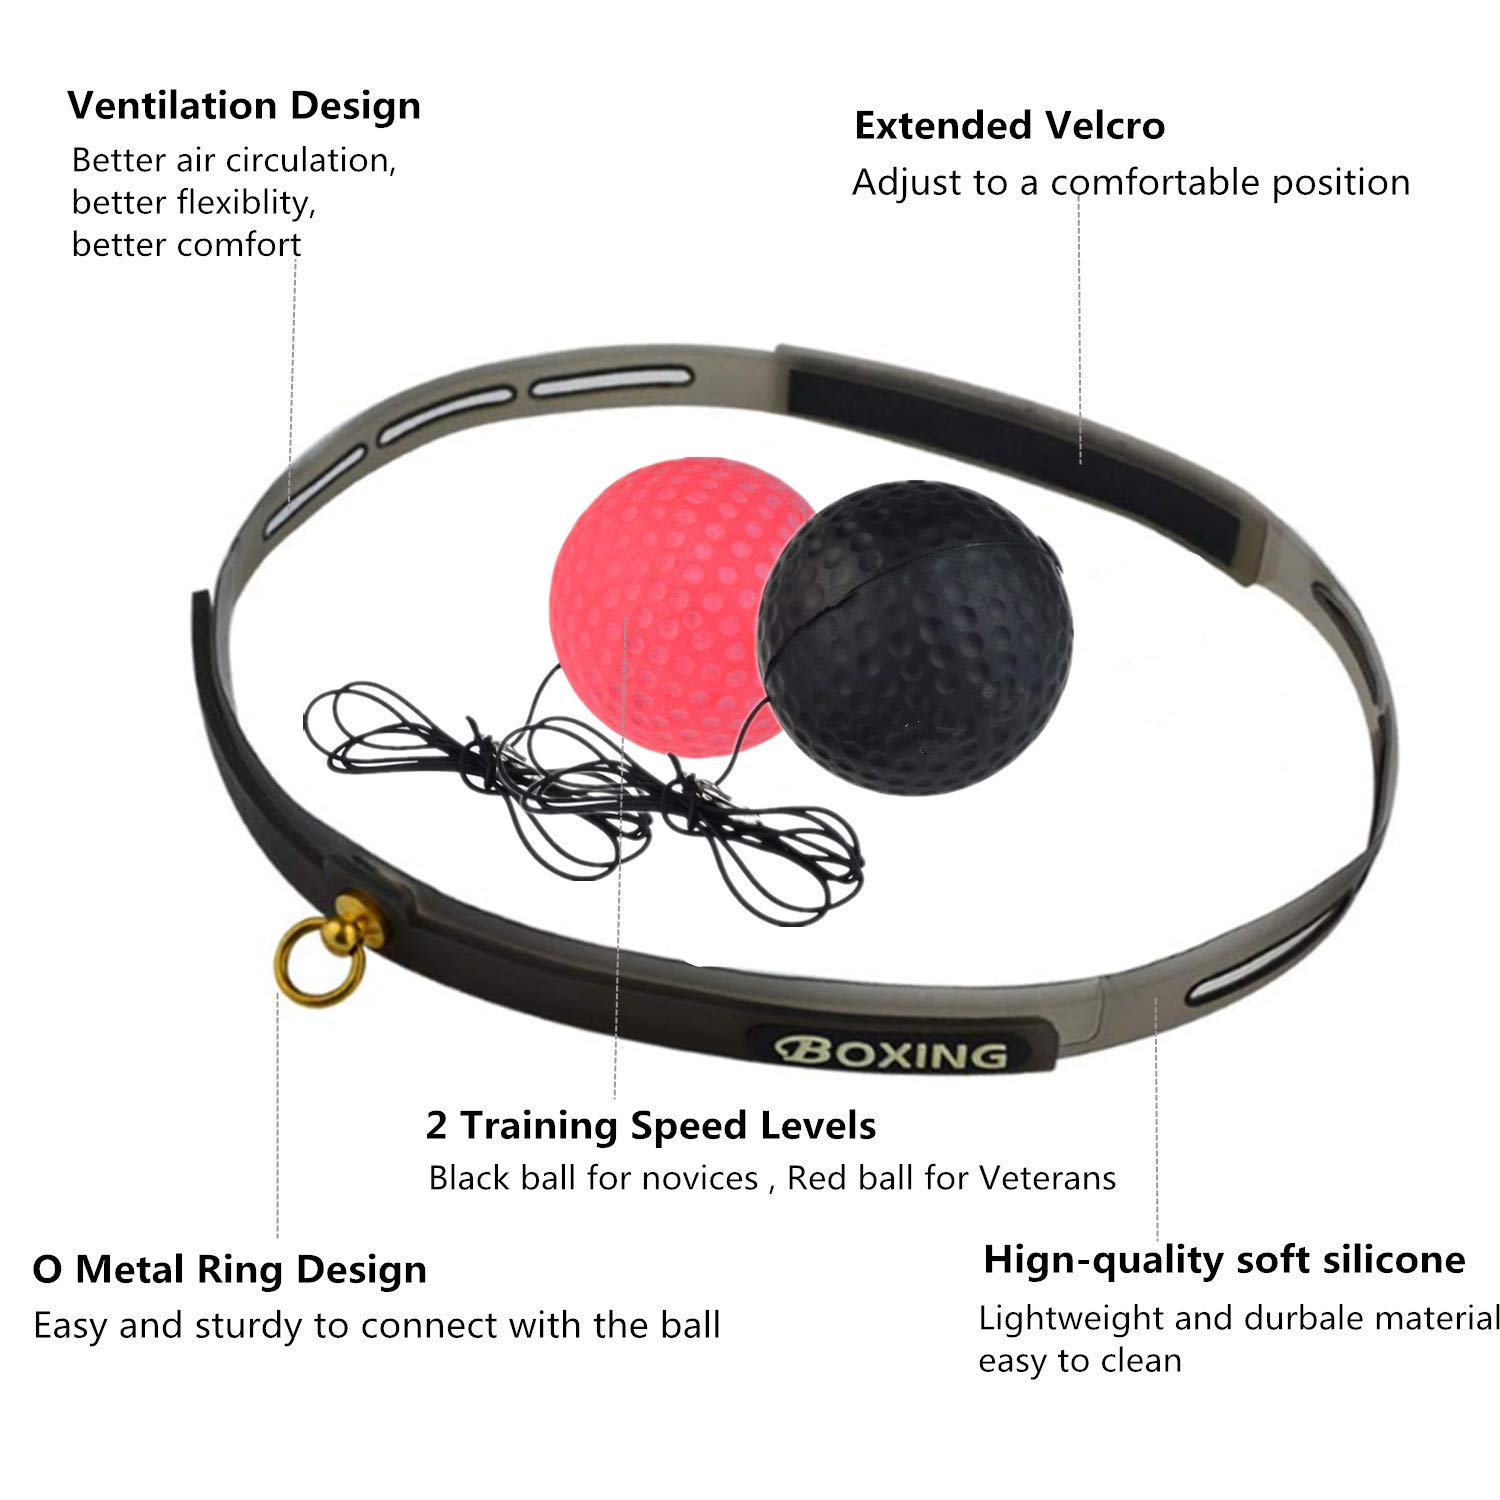 Reaction Speed Soft Safe Agility for Kids Sfee Boxing Reflex Ball Set Hand Eye Coordination Training 2 Training Difficulty Levels Box Ball with Non-Slip Headband Adjustable String Adult